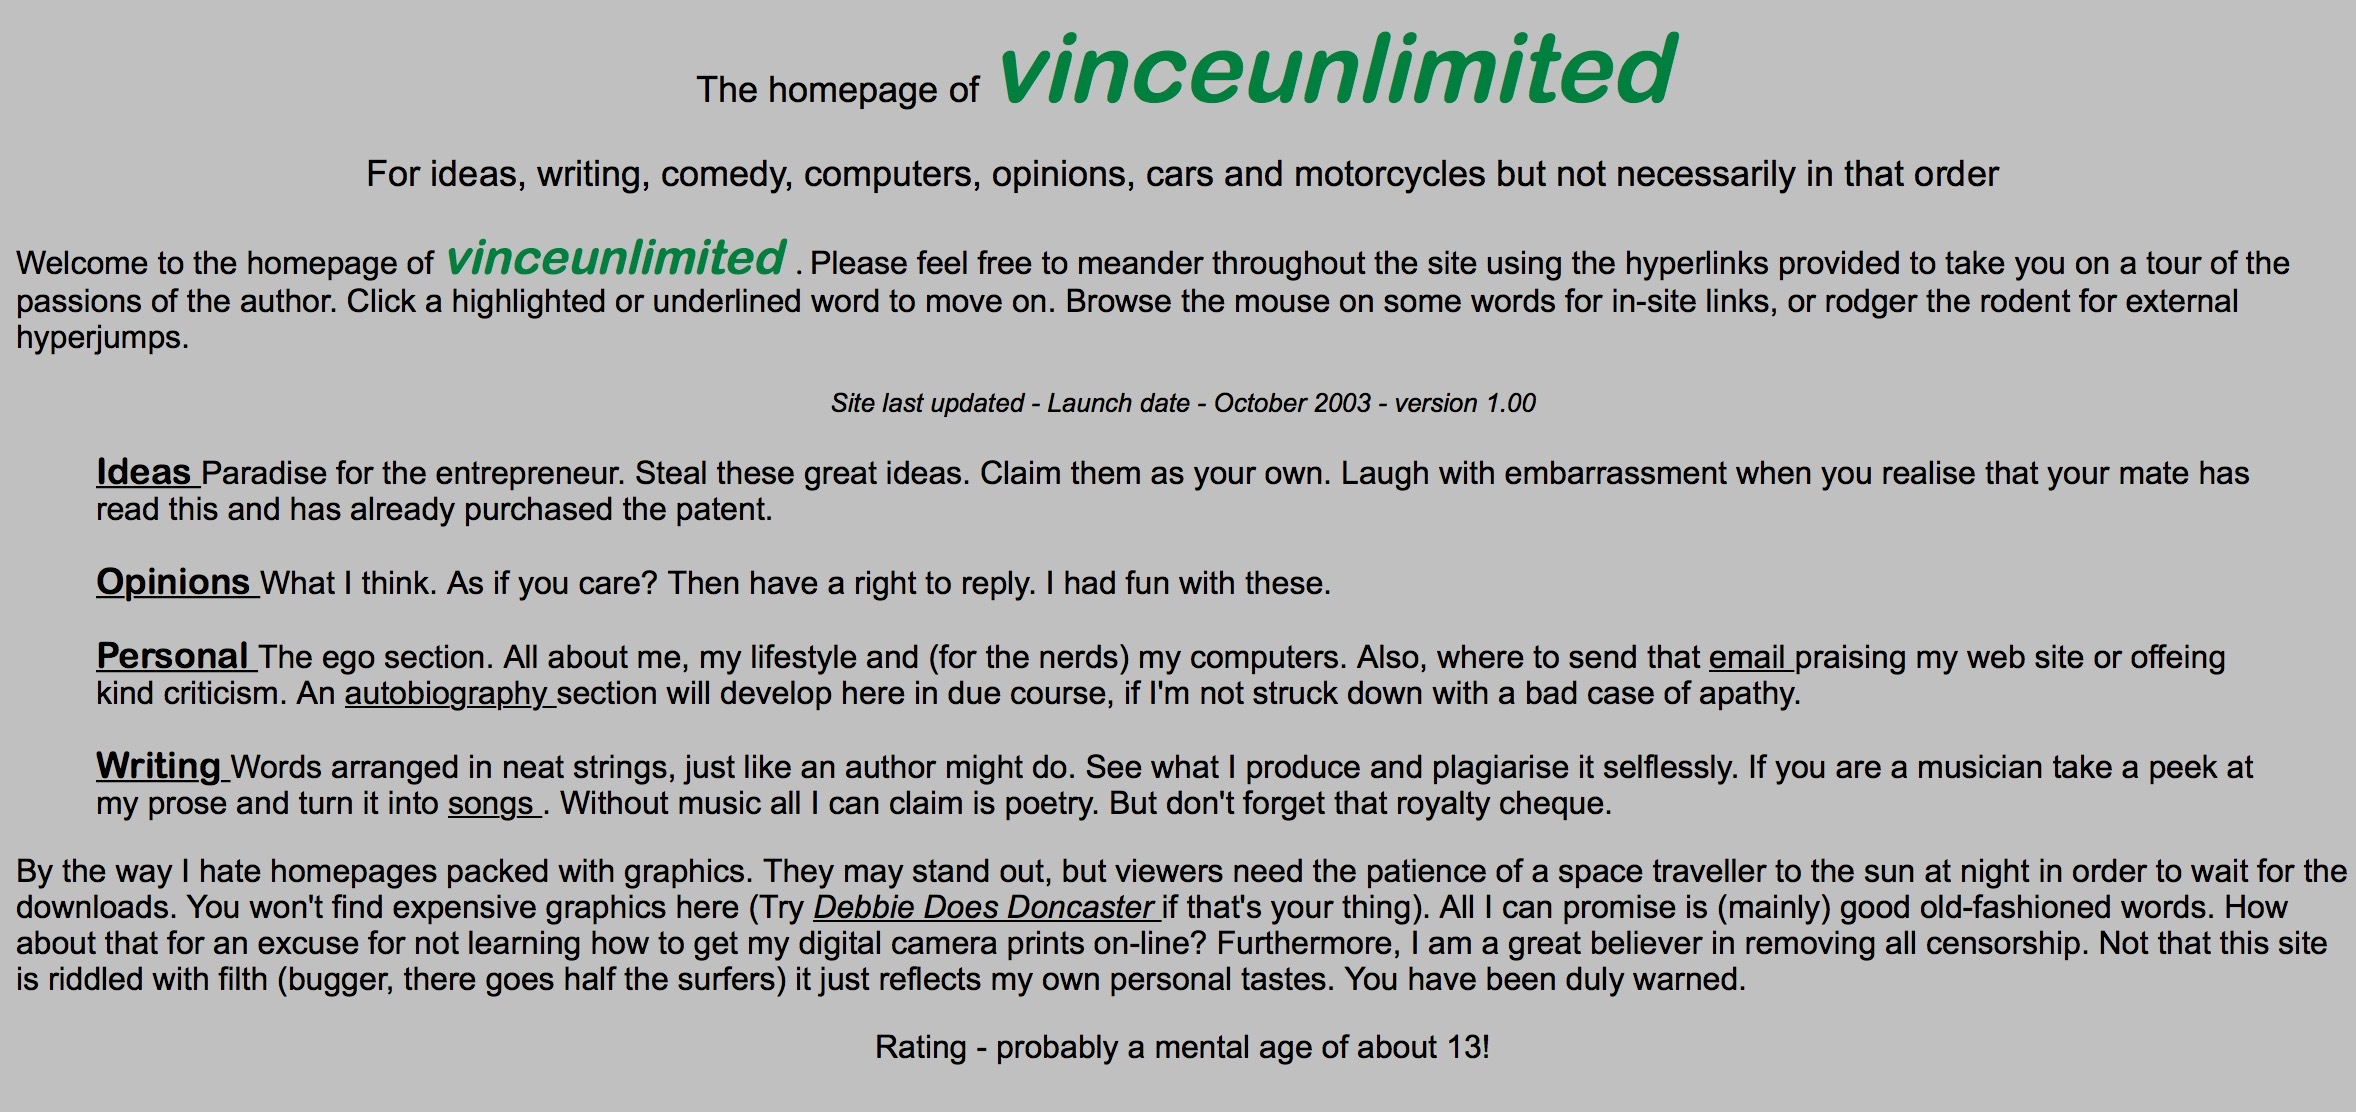 Screenshot of the Home page of vinceunlimited.co.uk version 1